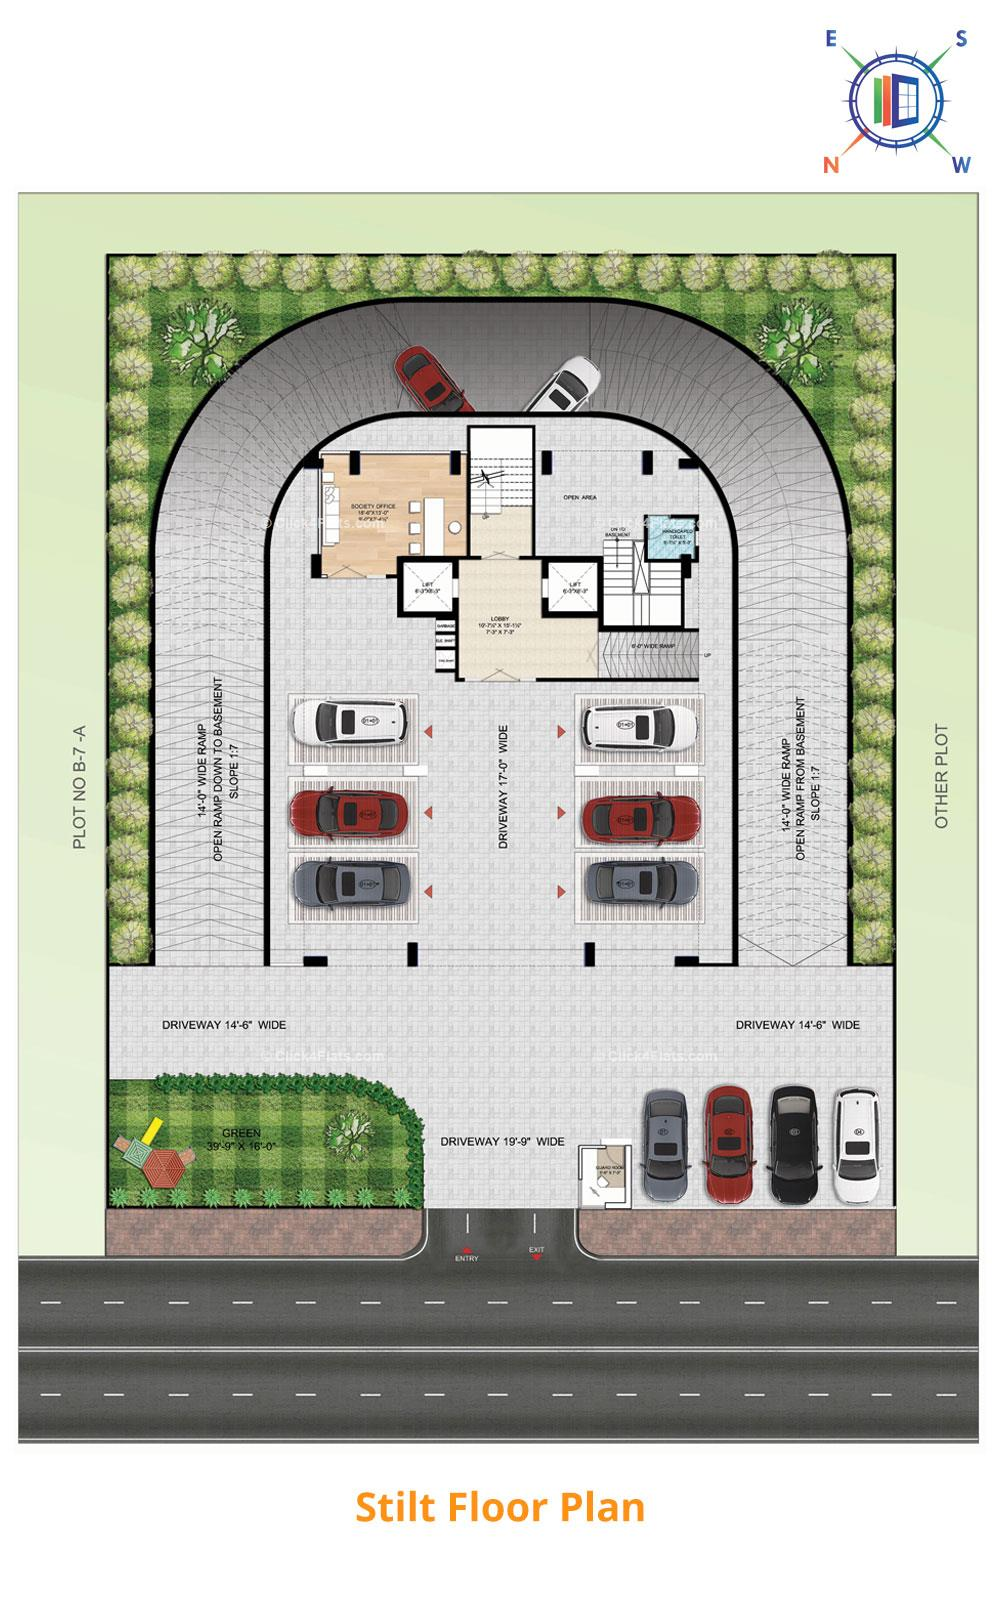 Aralyas Stilt Floor Plan